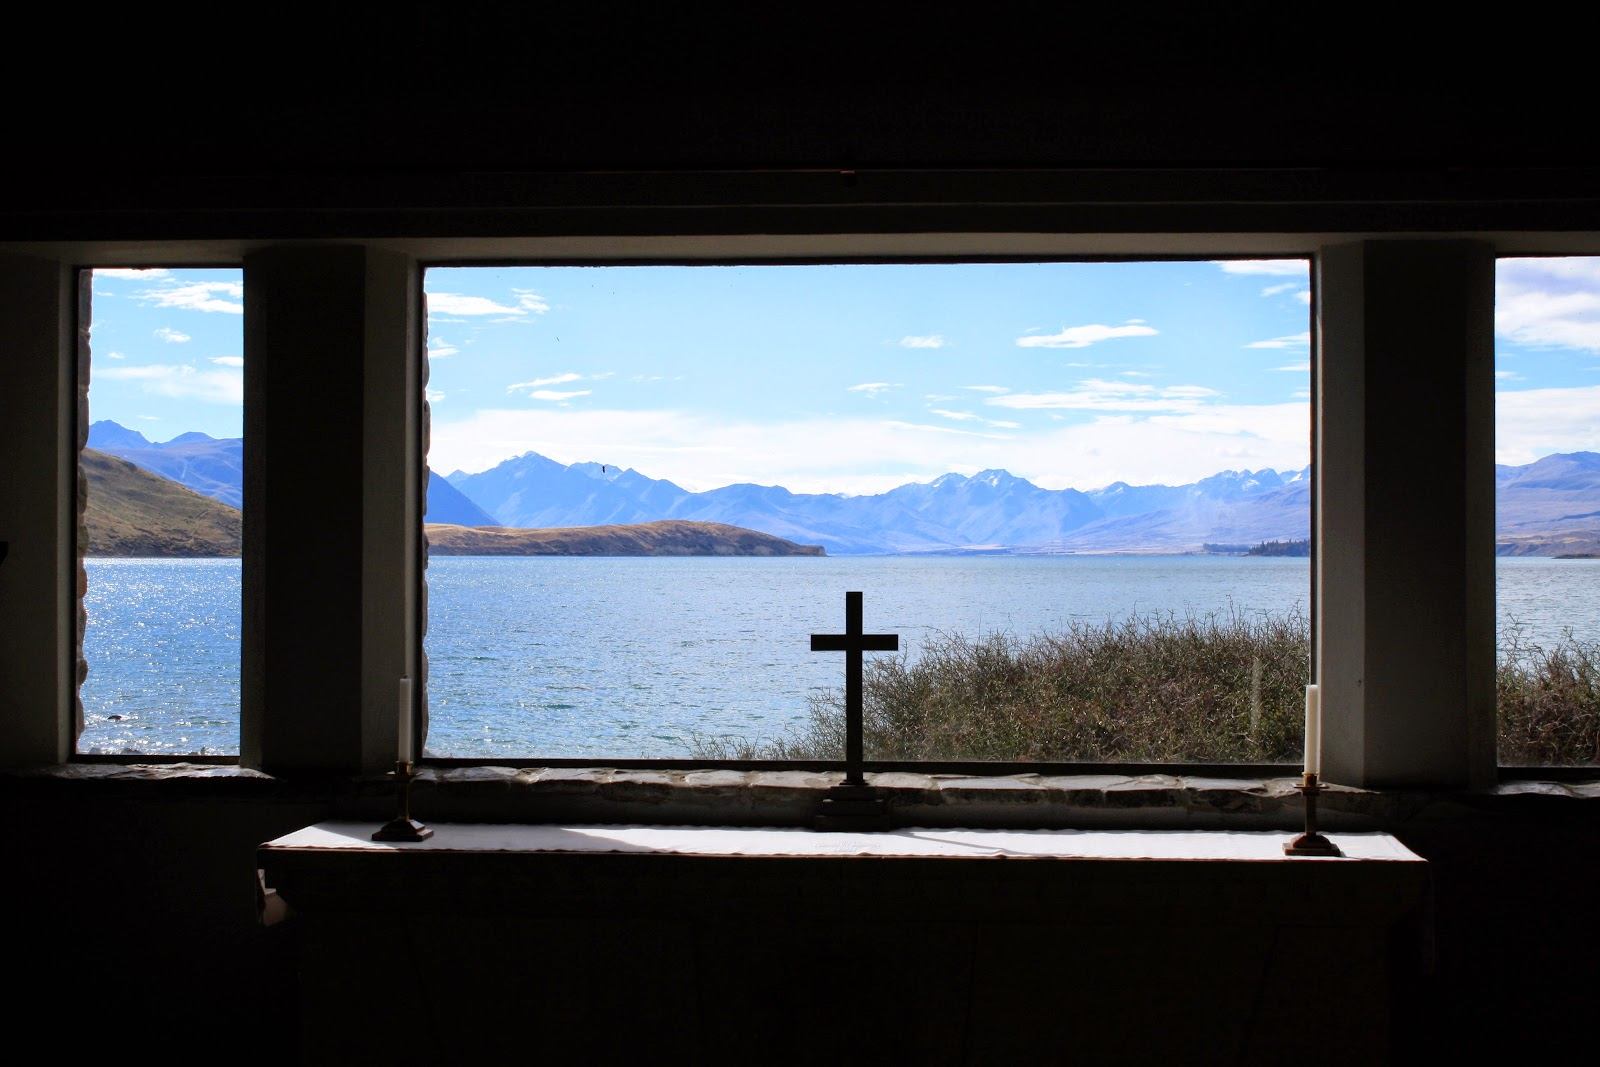 View from inside The Church of the Good Shepard at Lake Tekapo.